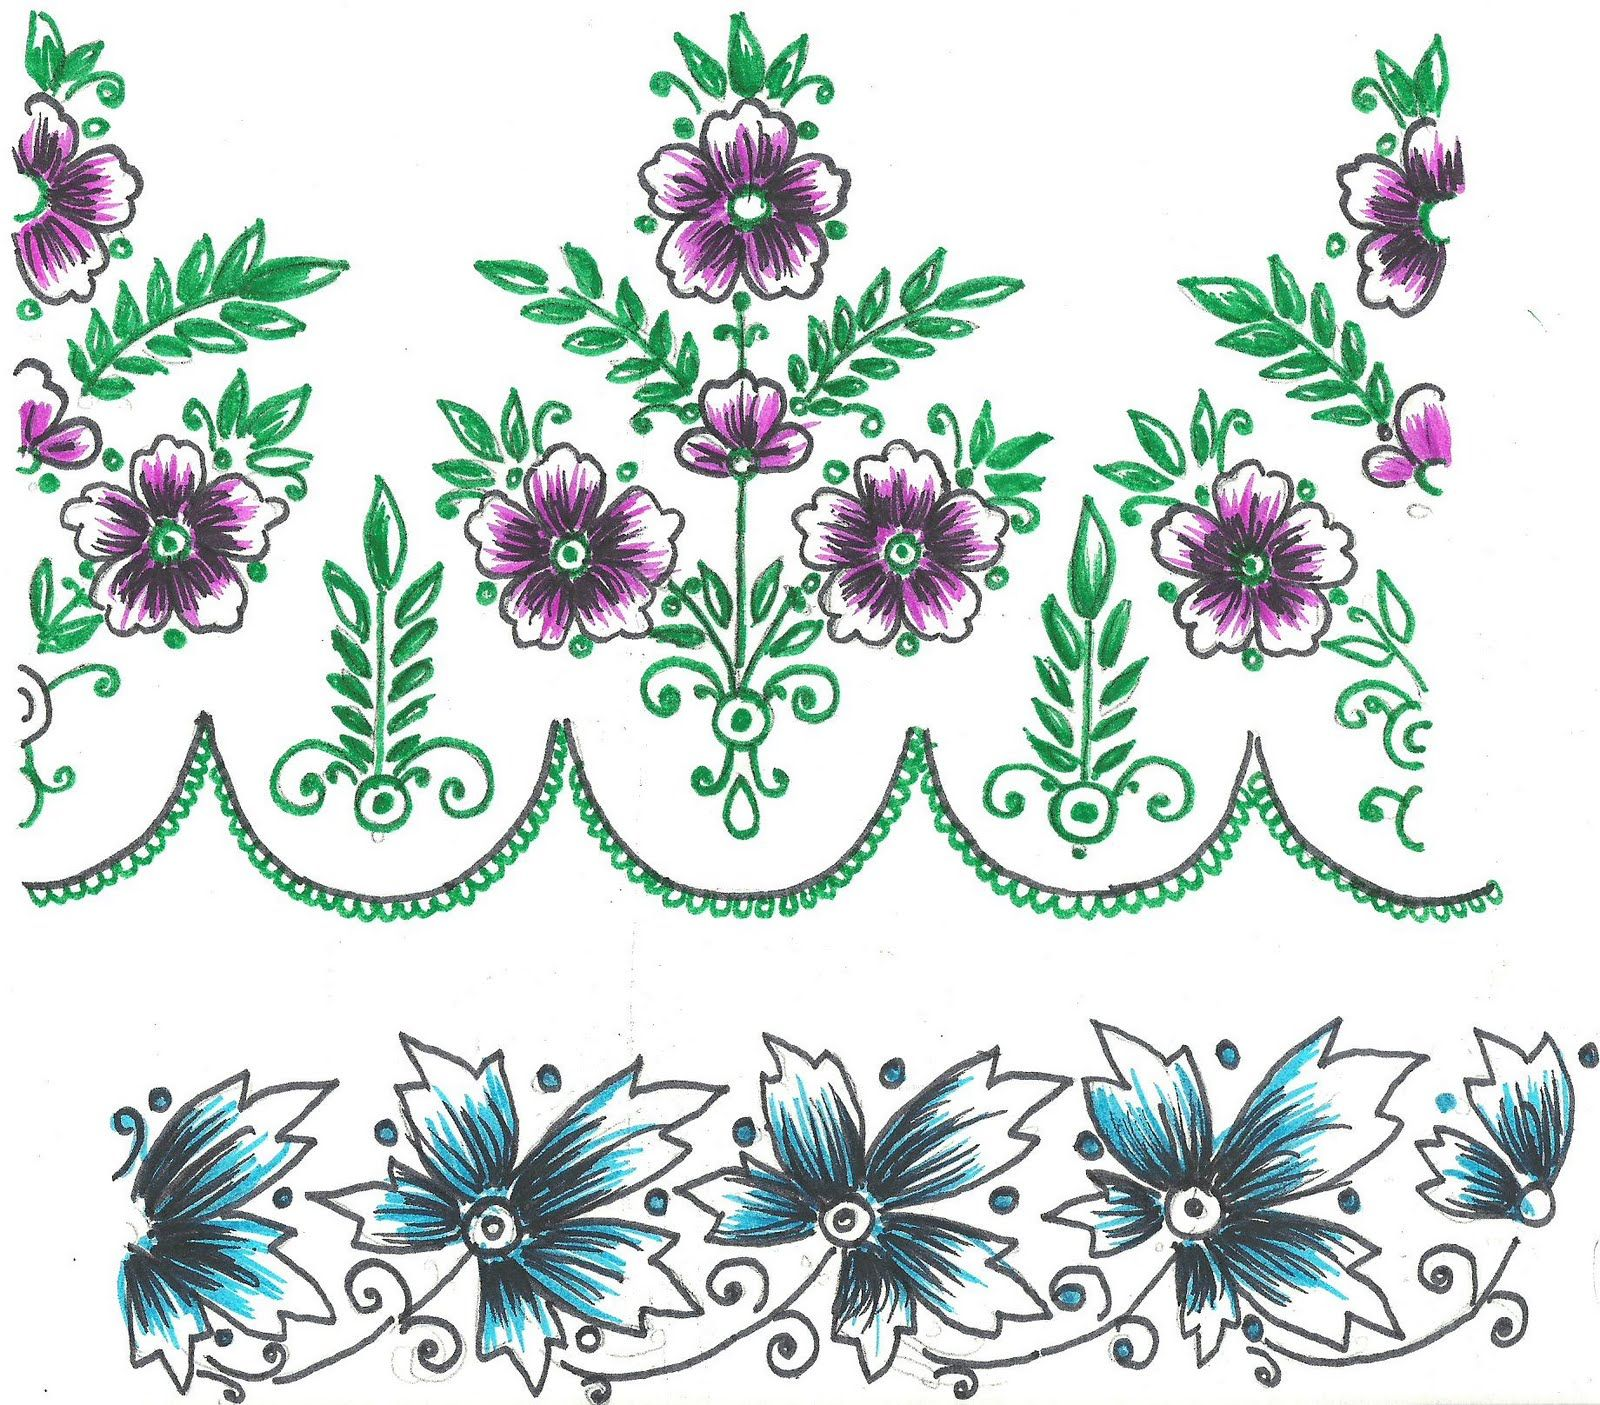 Free Hand Embroidery Flowers Patterns | Saree And Table-cloth Border Design. | Sewing ...